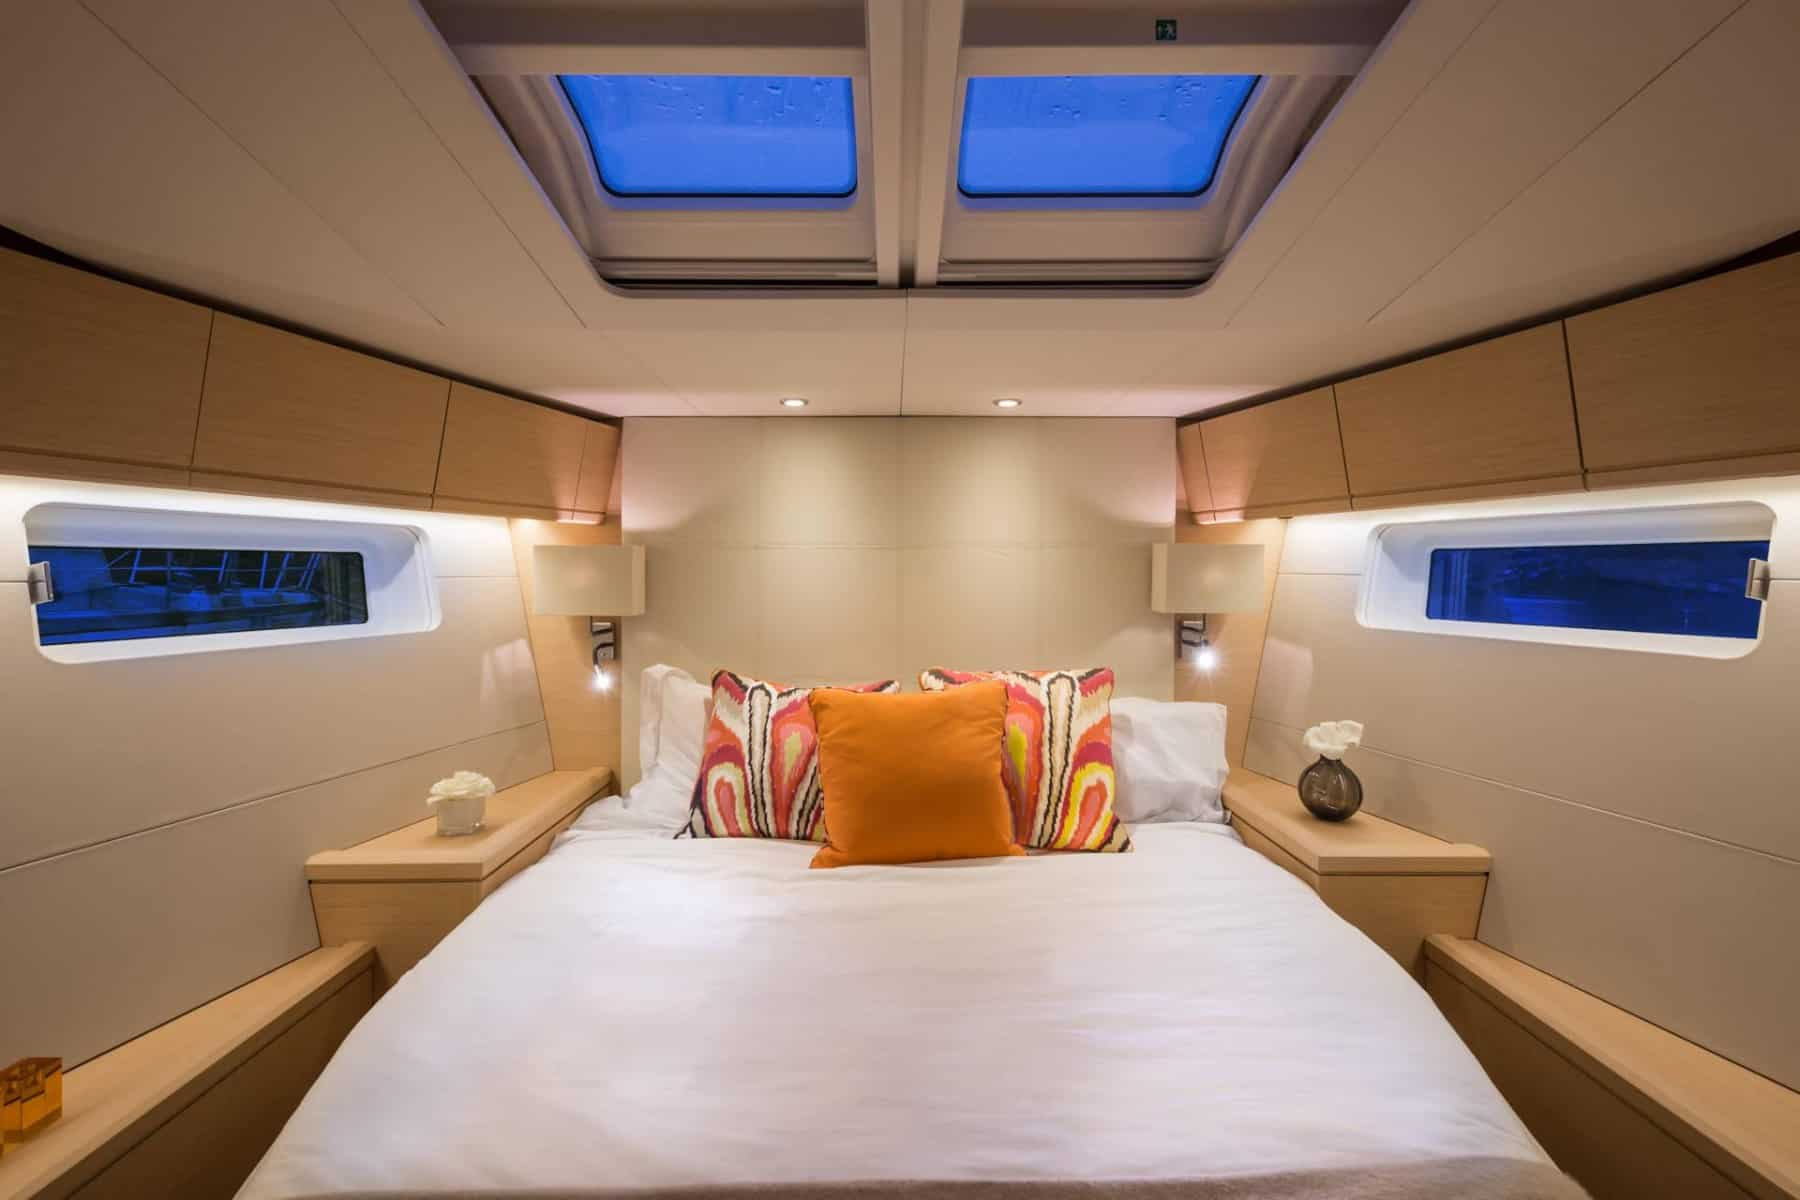 Jeanneau-54-interior-cabin-1-charter-ownership-yacht